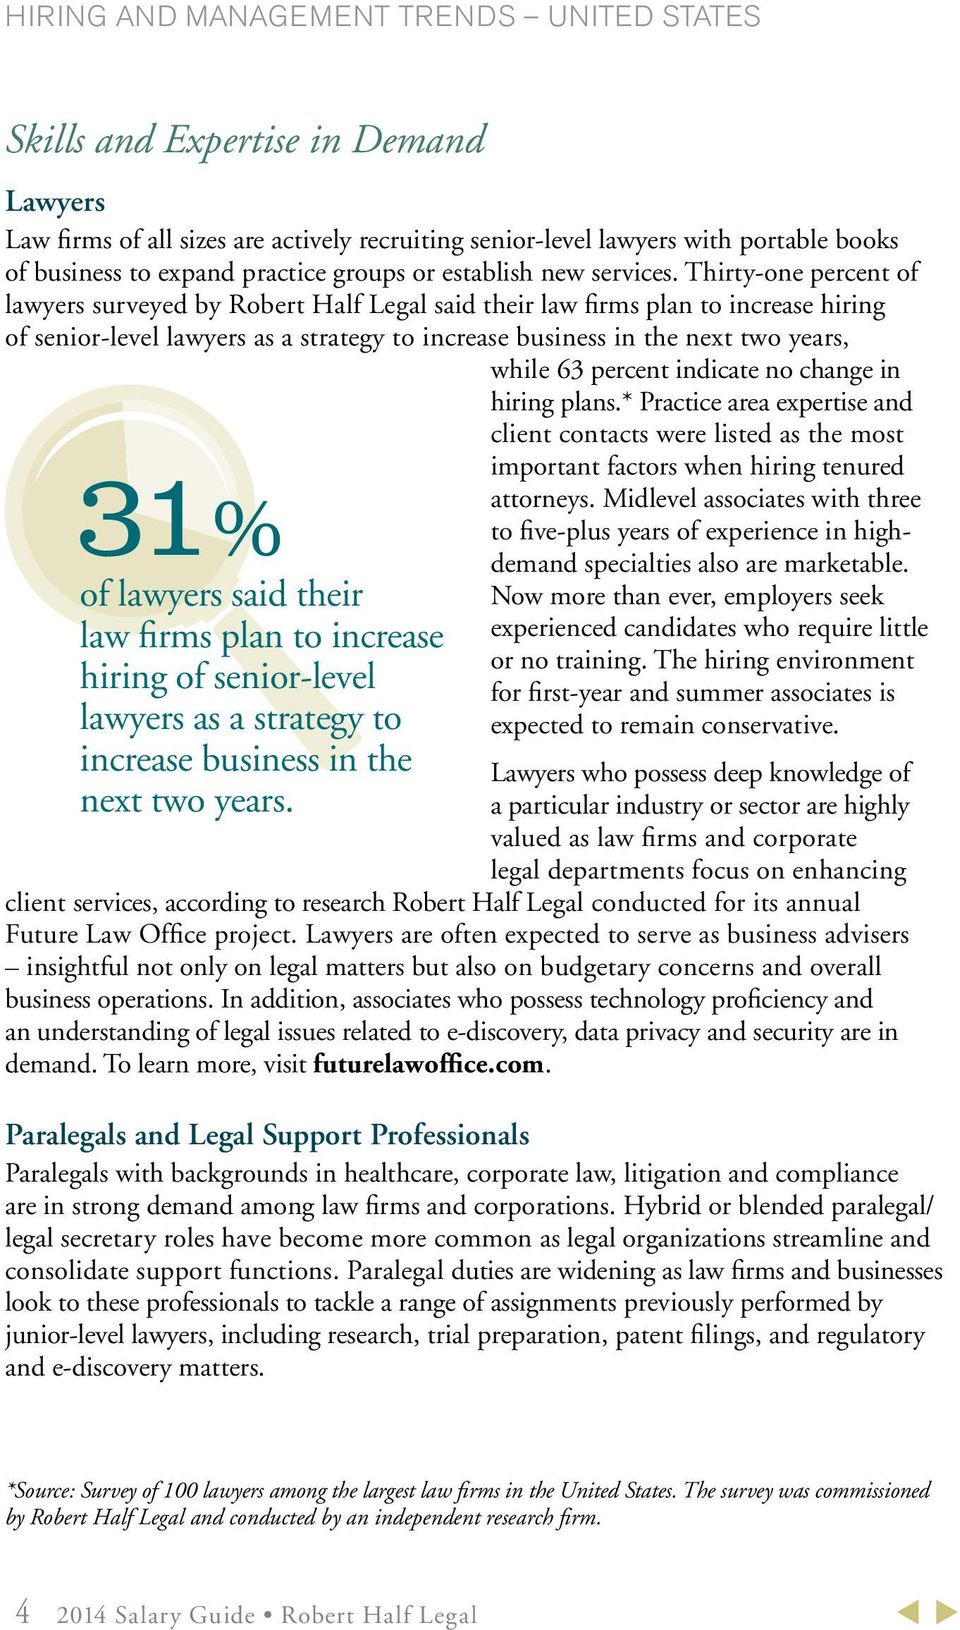 Thirty-one percent of lawyers surveyed by Robert Half Legal said their law firms plan to increase hiring of senior-level lawyers as a strategy to increase business in the next two years, while 63